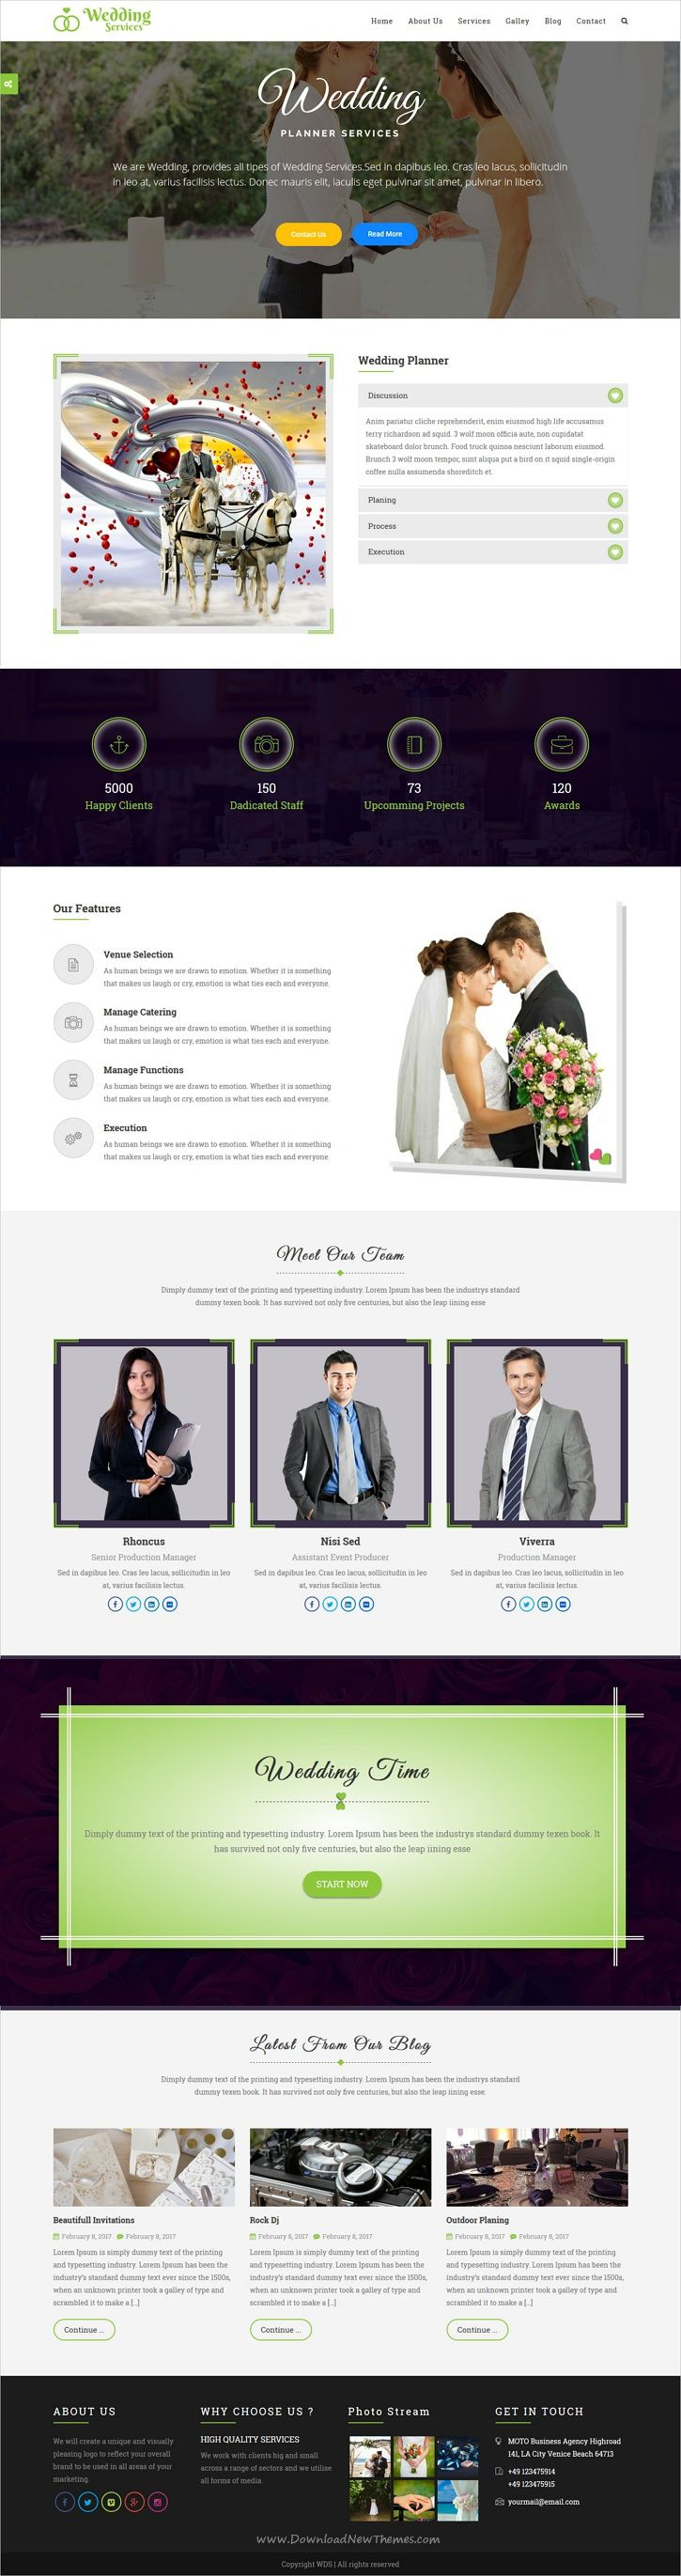 Wedding services is clean and modern design